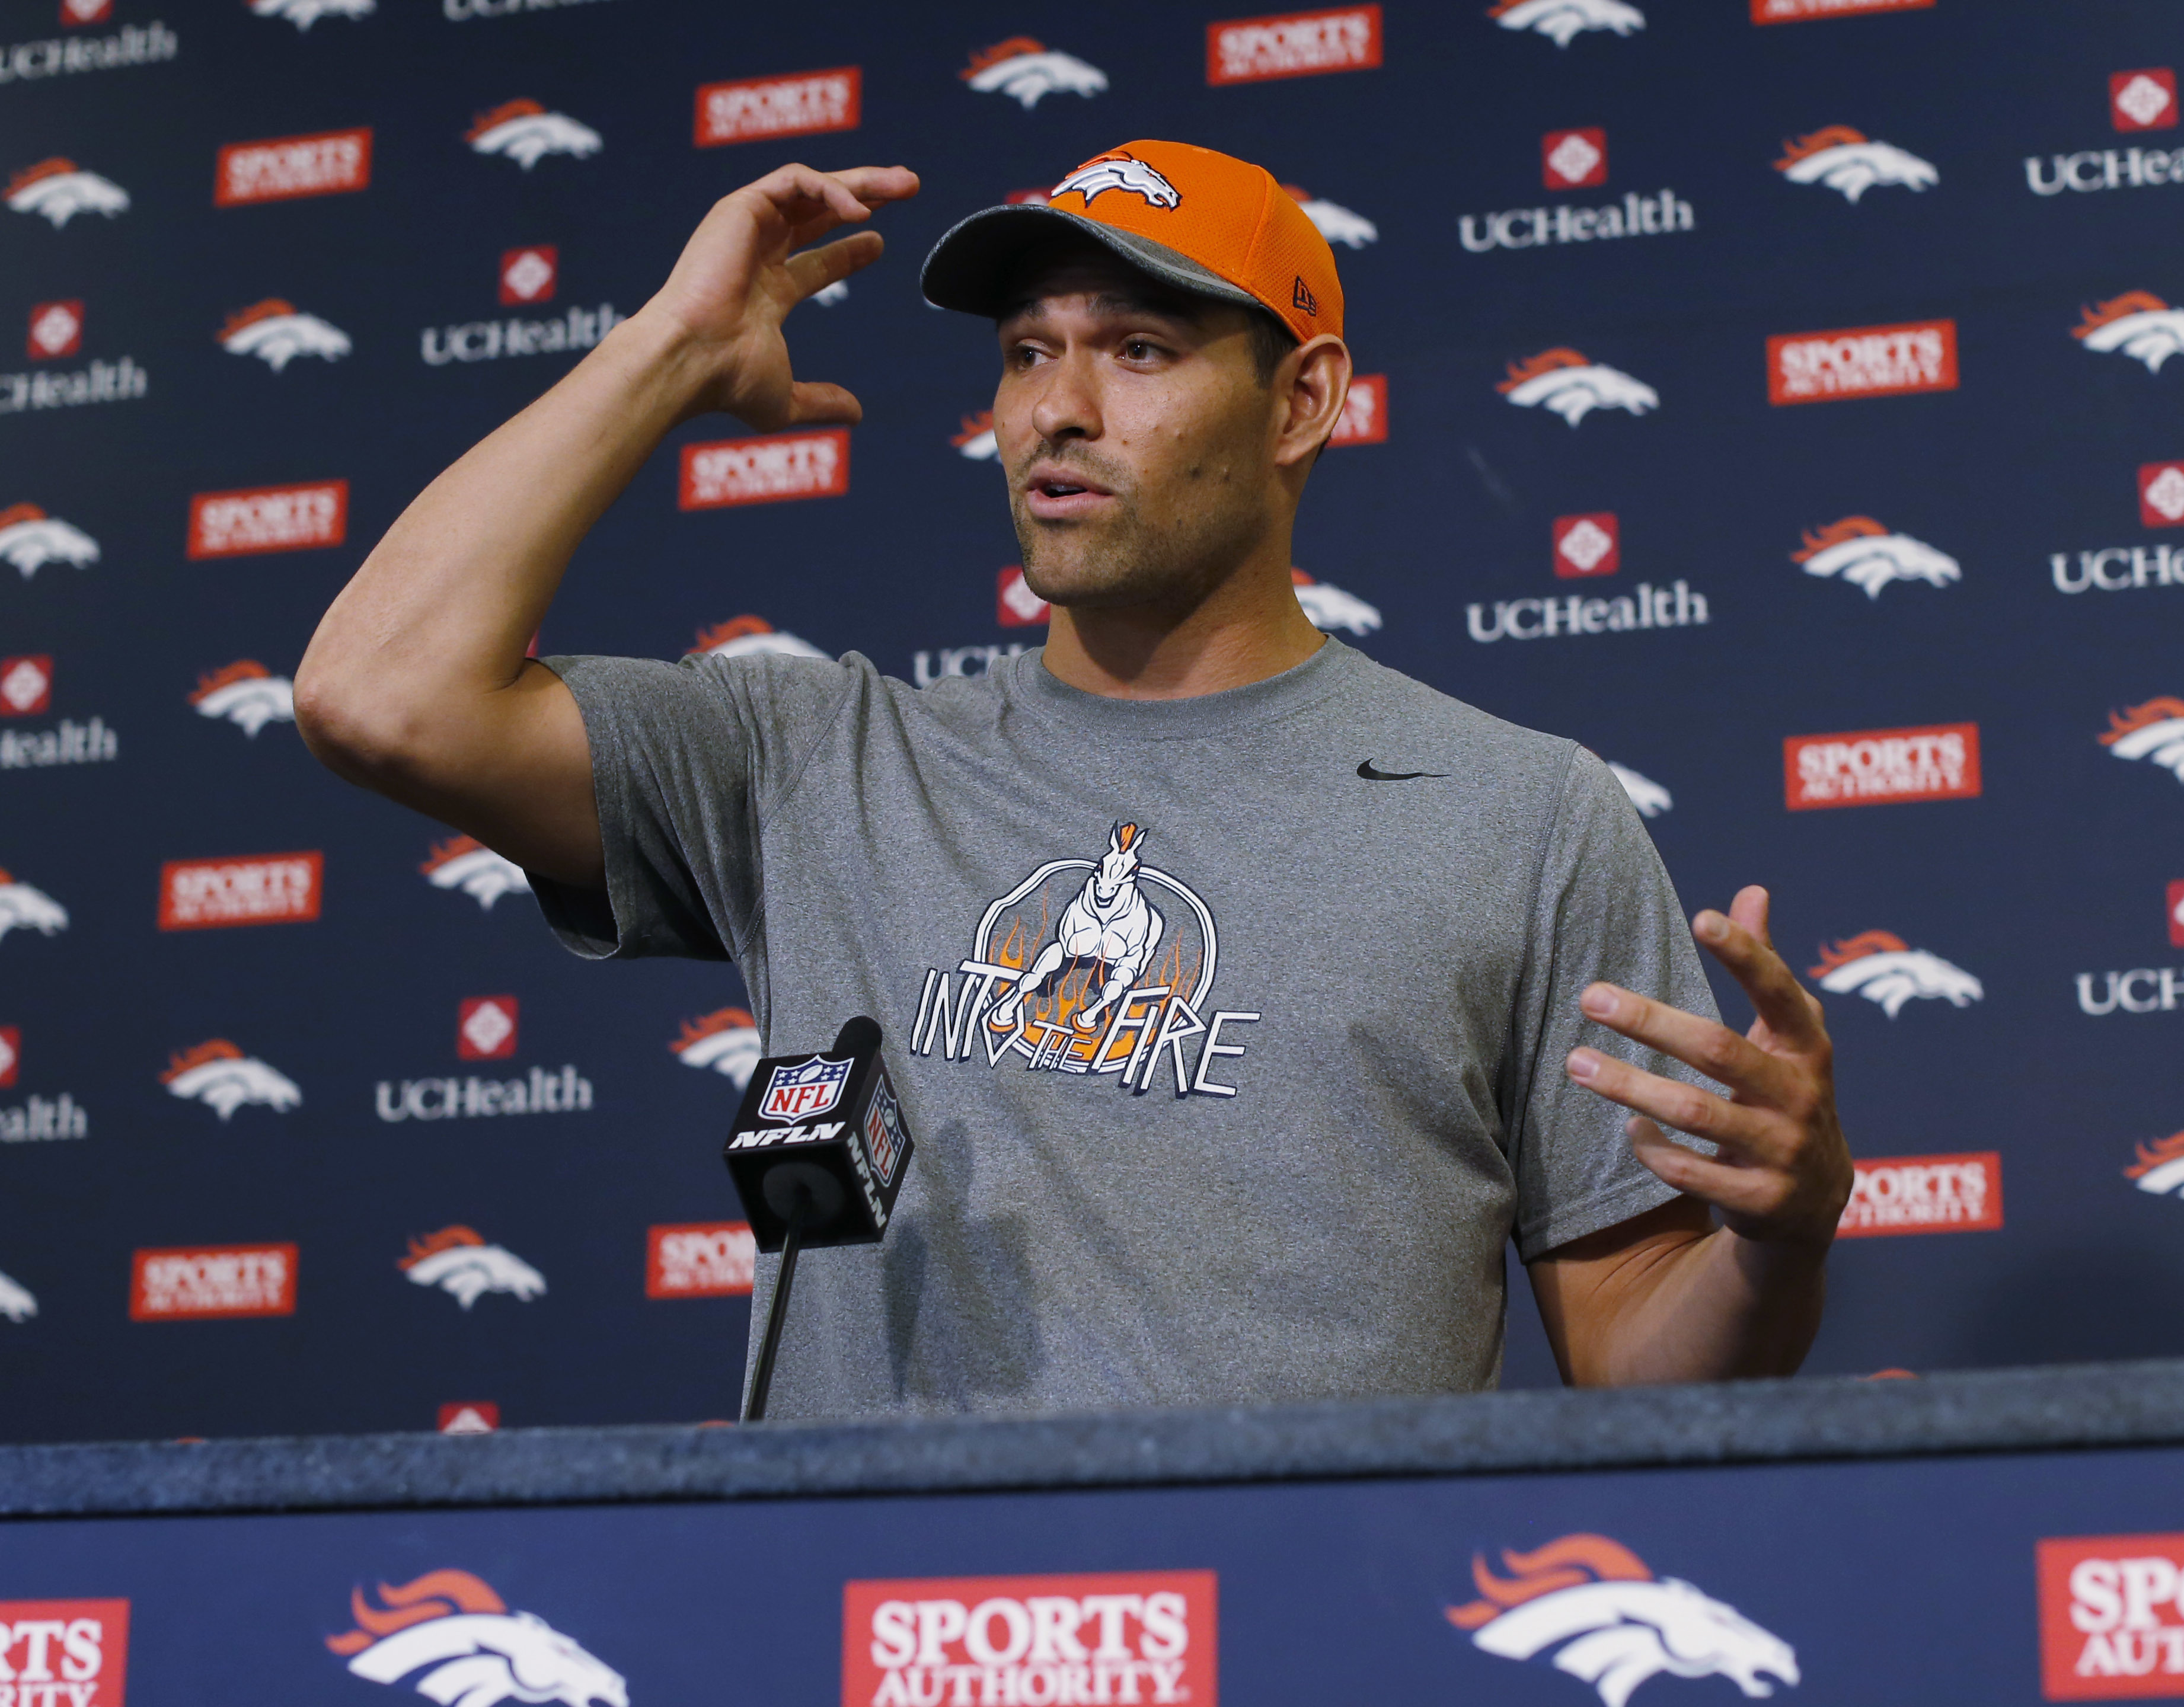 Denver Broncos quarterback Mark Sanchez responds to questions during a news conference Monday, May 2, 2016, at the team's headquarters in Englewood, Colo. (AP Photo/David Zalubowski)